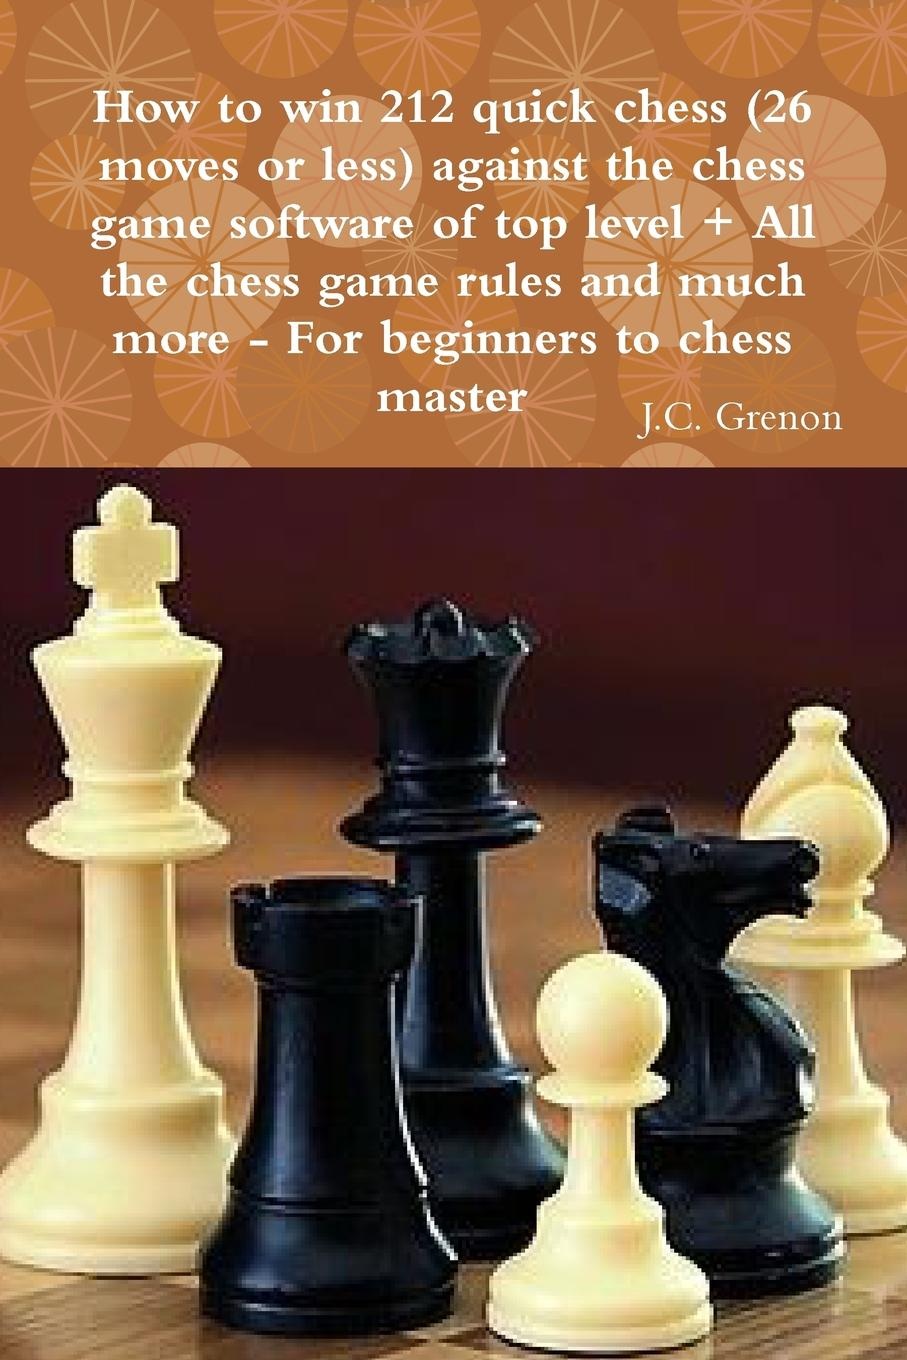 J.C. Grenon How to win 212 quick chess (26 moves or less) against the high chess software . All the chess rules and much more aron nimzowitsch my system winning chess strategies